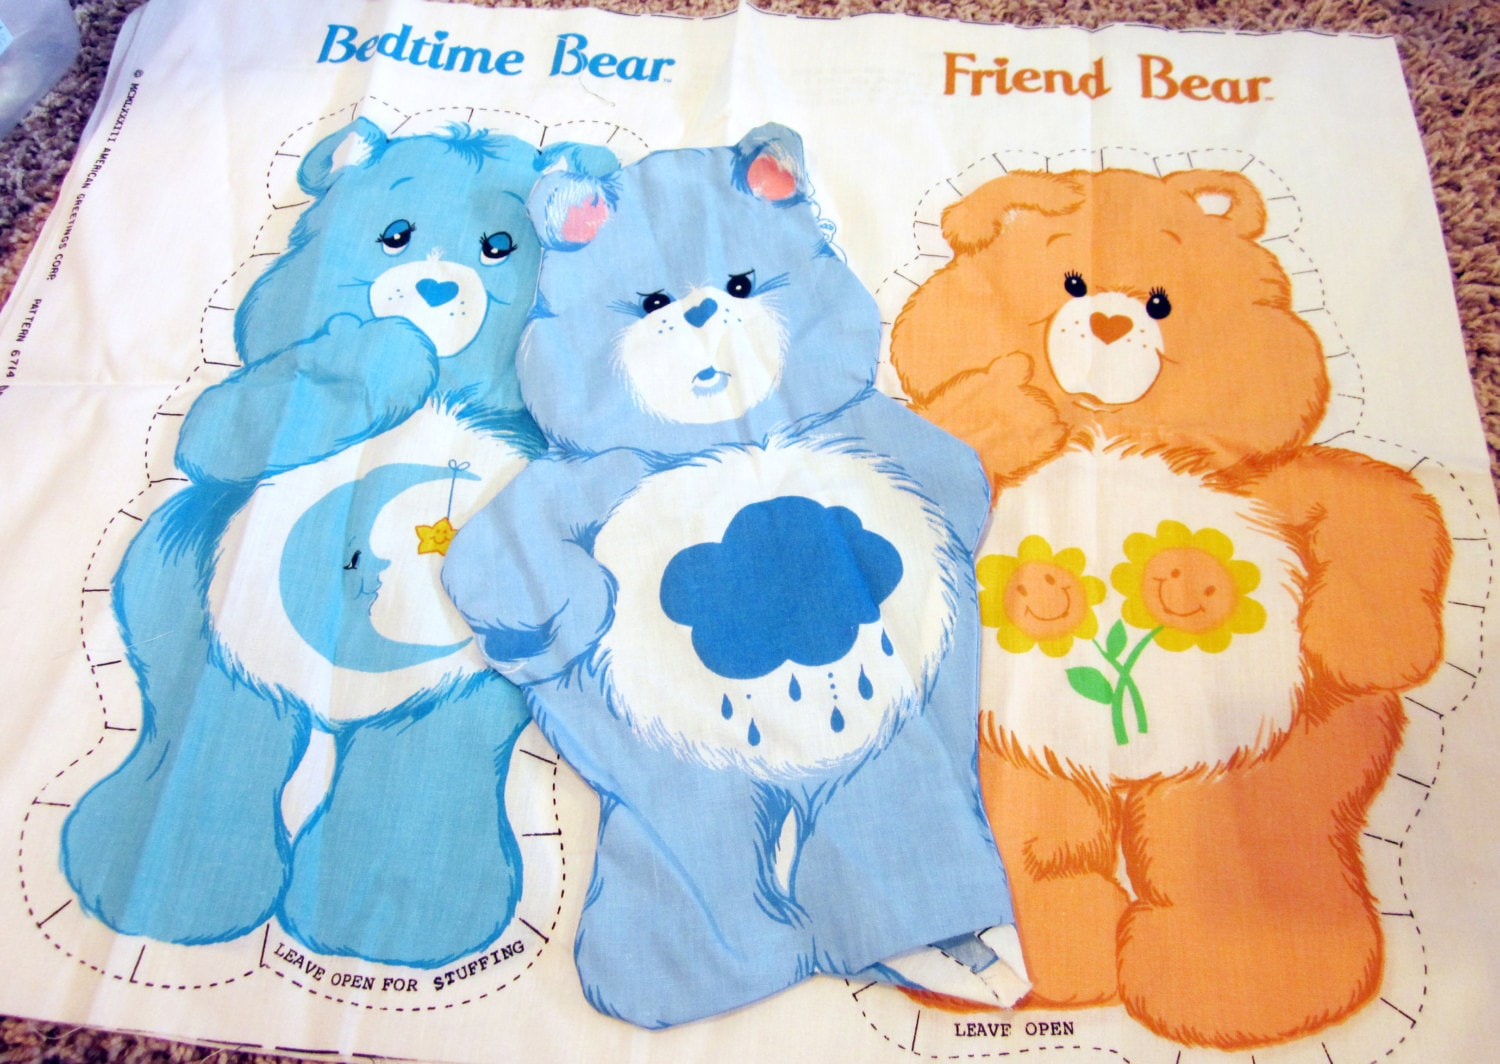 Vintage Care Bears Fabric Panels Bedtime Bear by NostalgiaMama